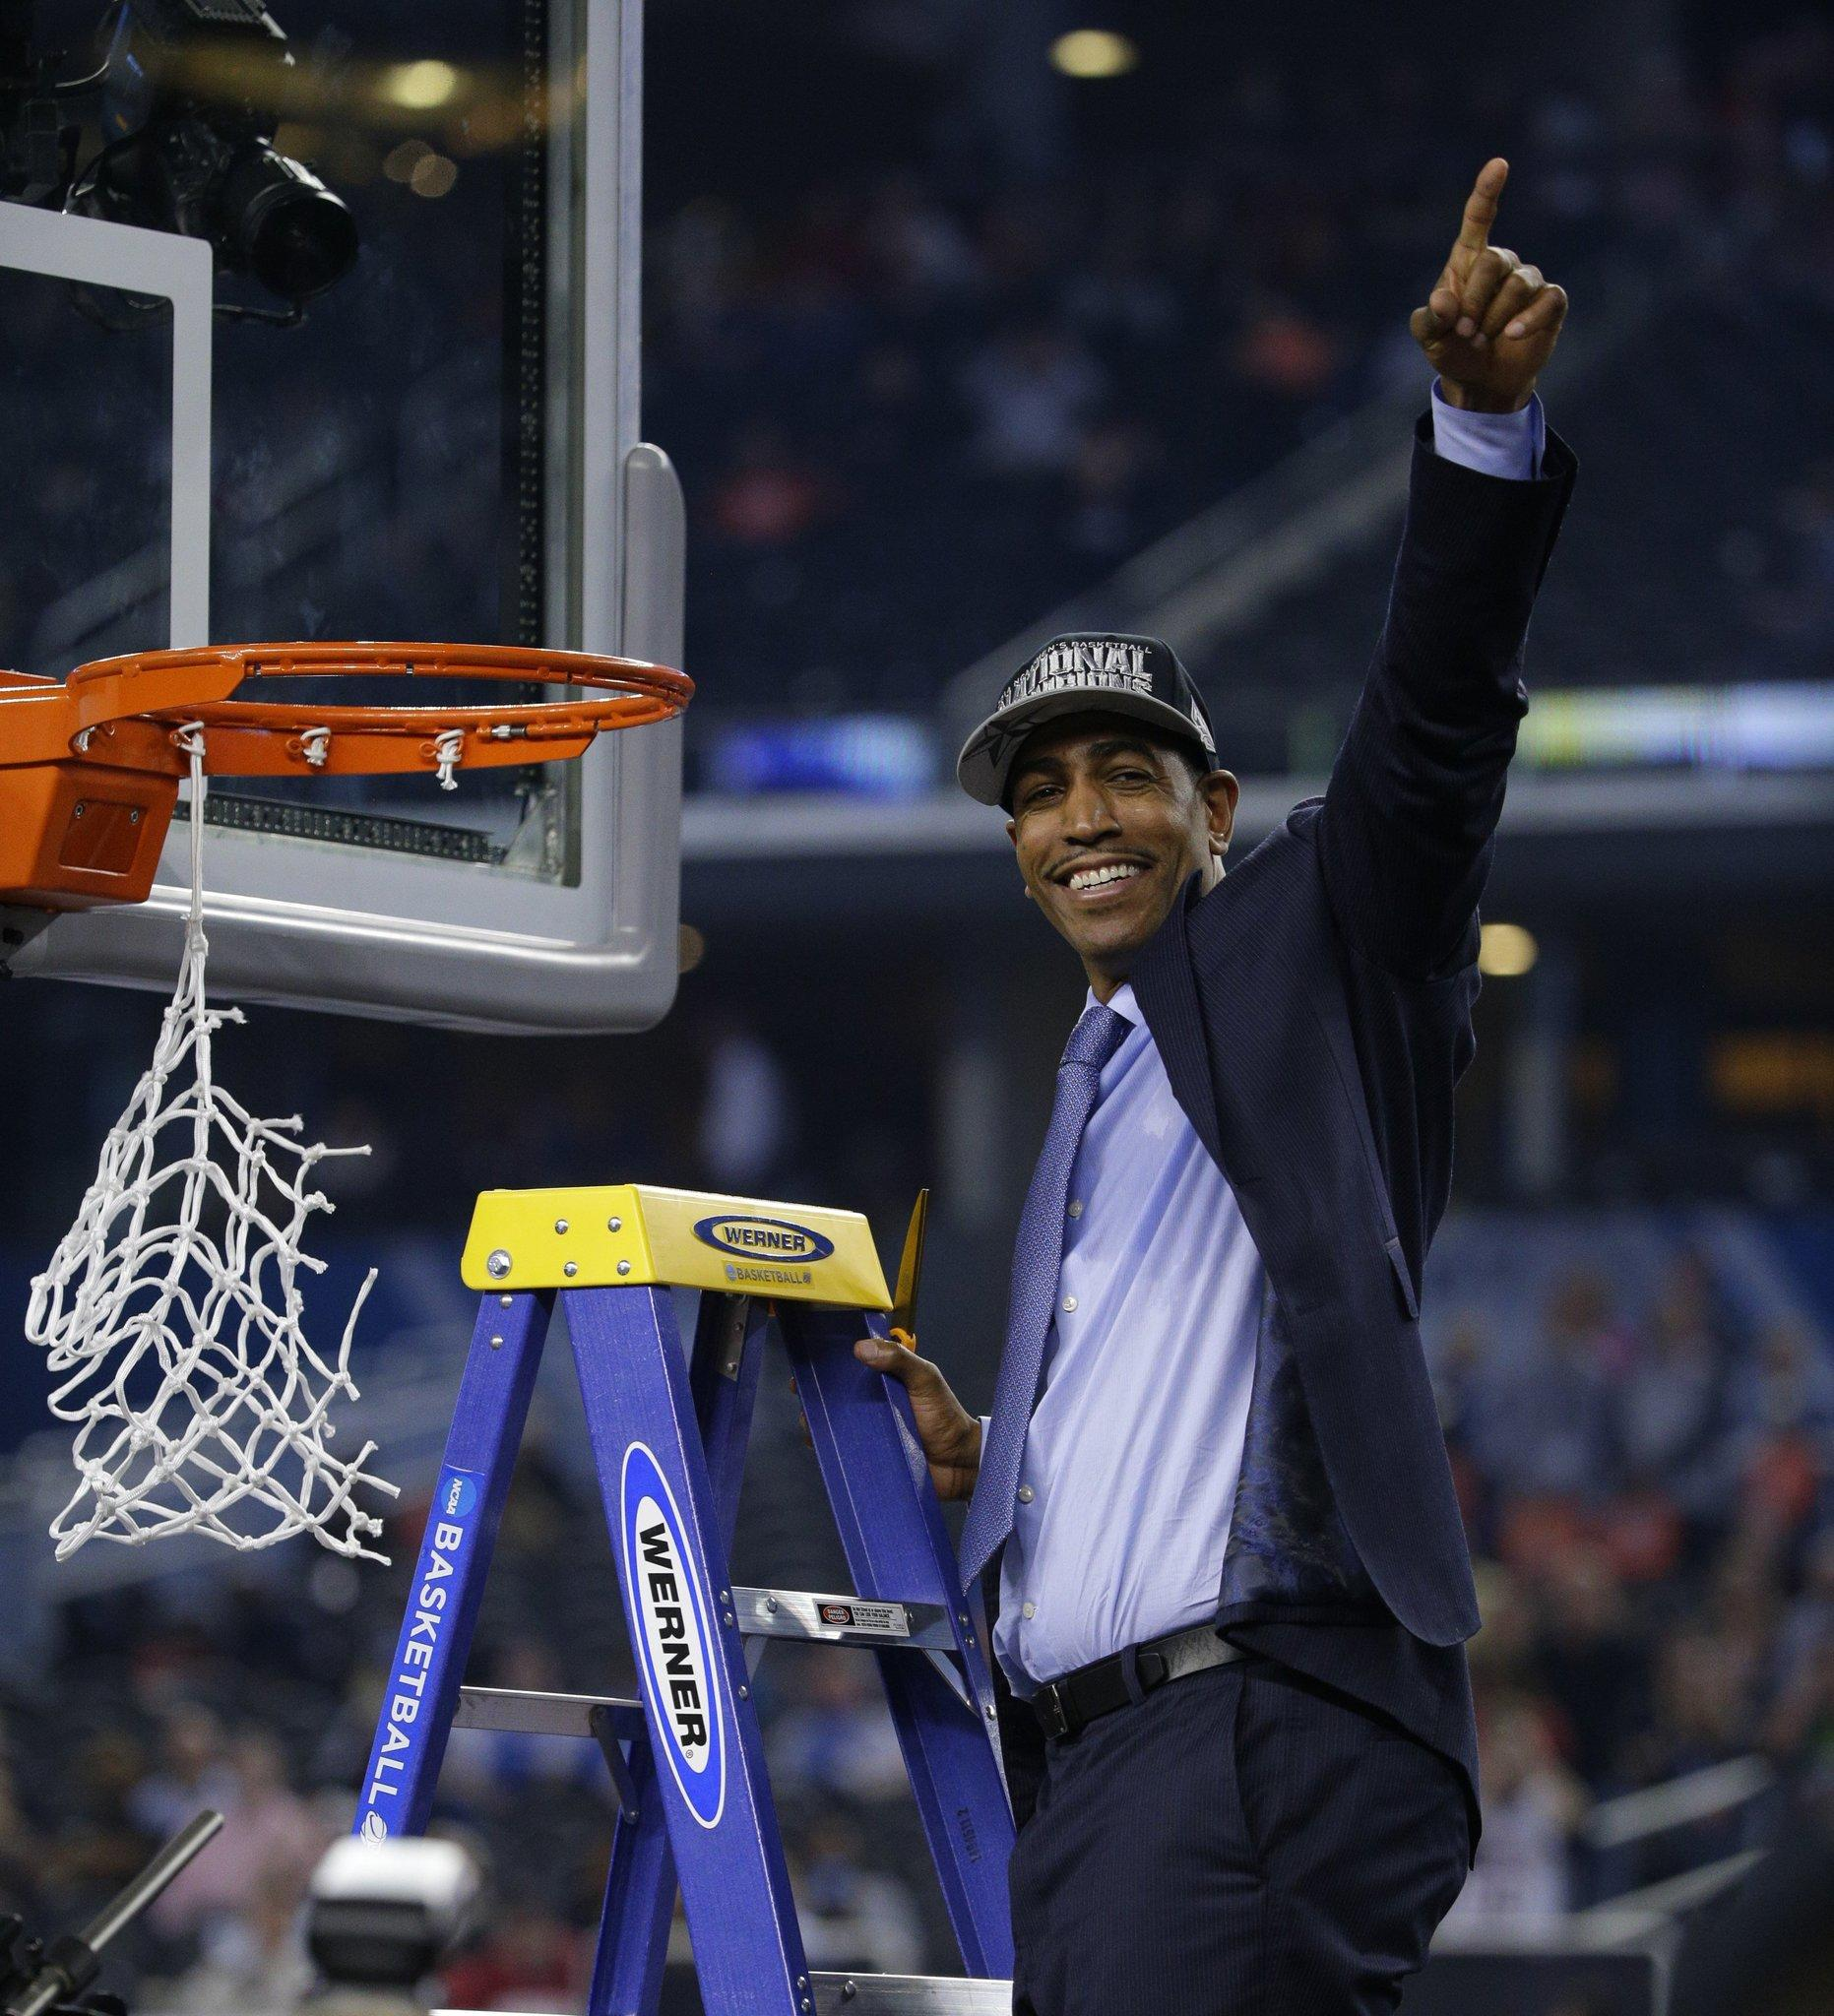 Connecticut Huskies head coach Kevin Ollie goes up to cut the net as the Connecticut Huskies beat the Kentucky Wildcats 60-54 in the NCAA Final Four championship game at AT&T Stadium in Arlington, Texas, Monday, April 7, 2014. (Mark Cornelison/Lexington Herald-Leader/MCT)